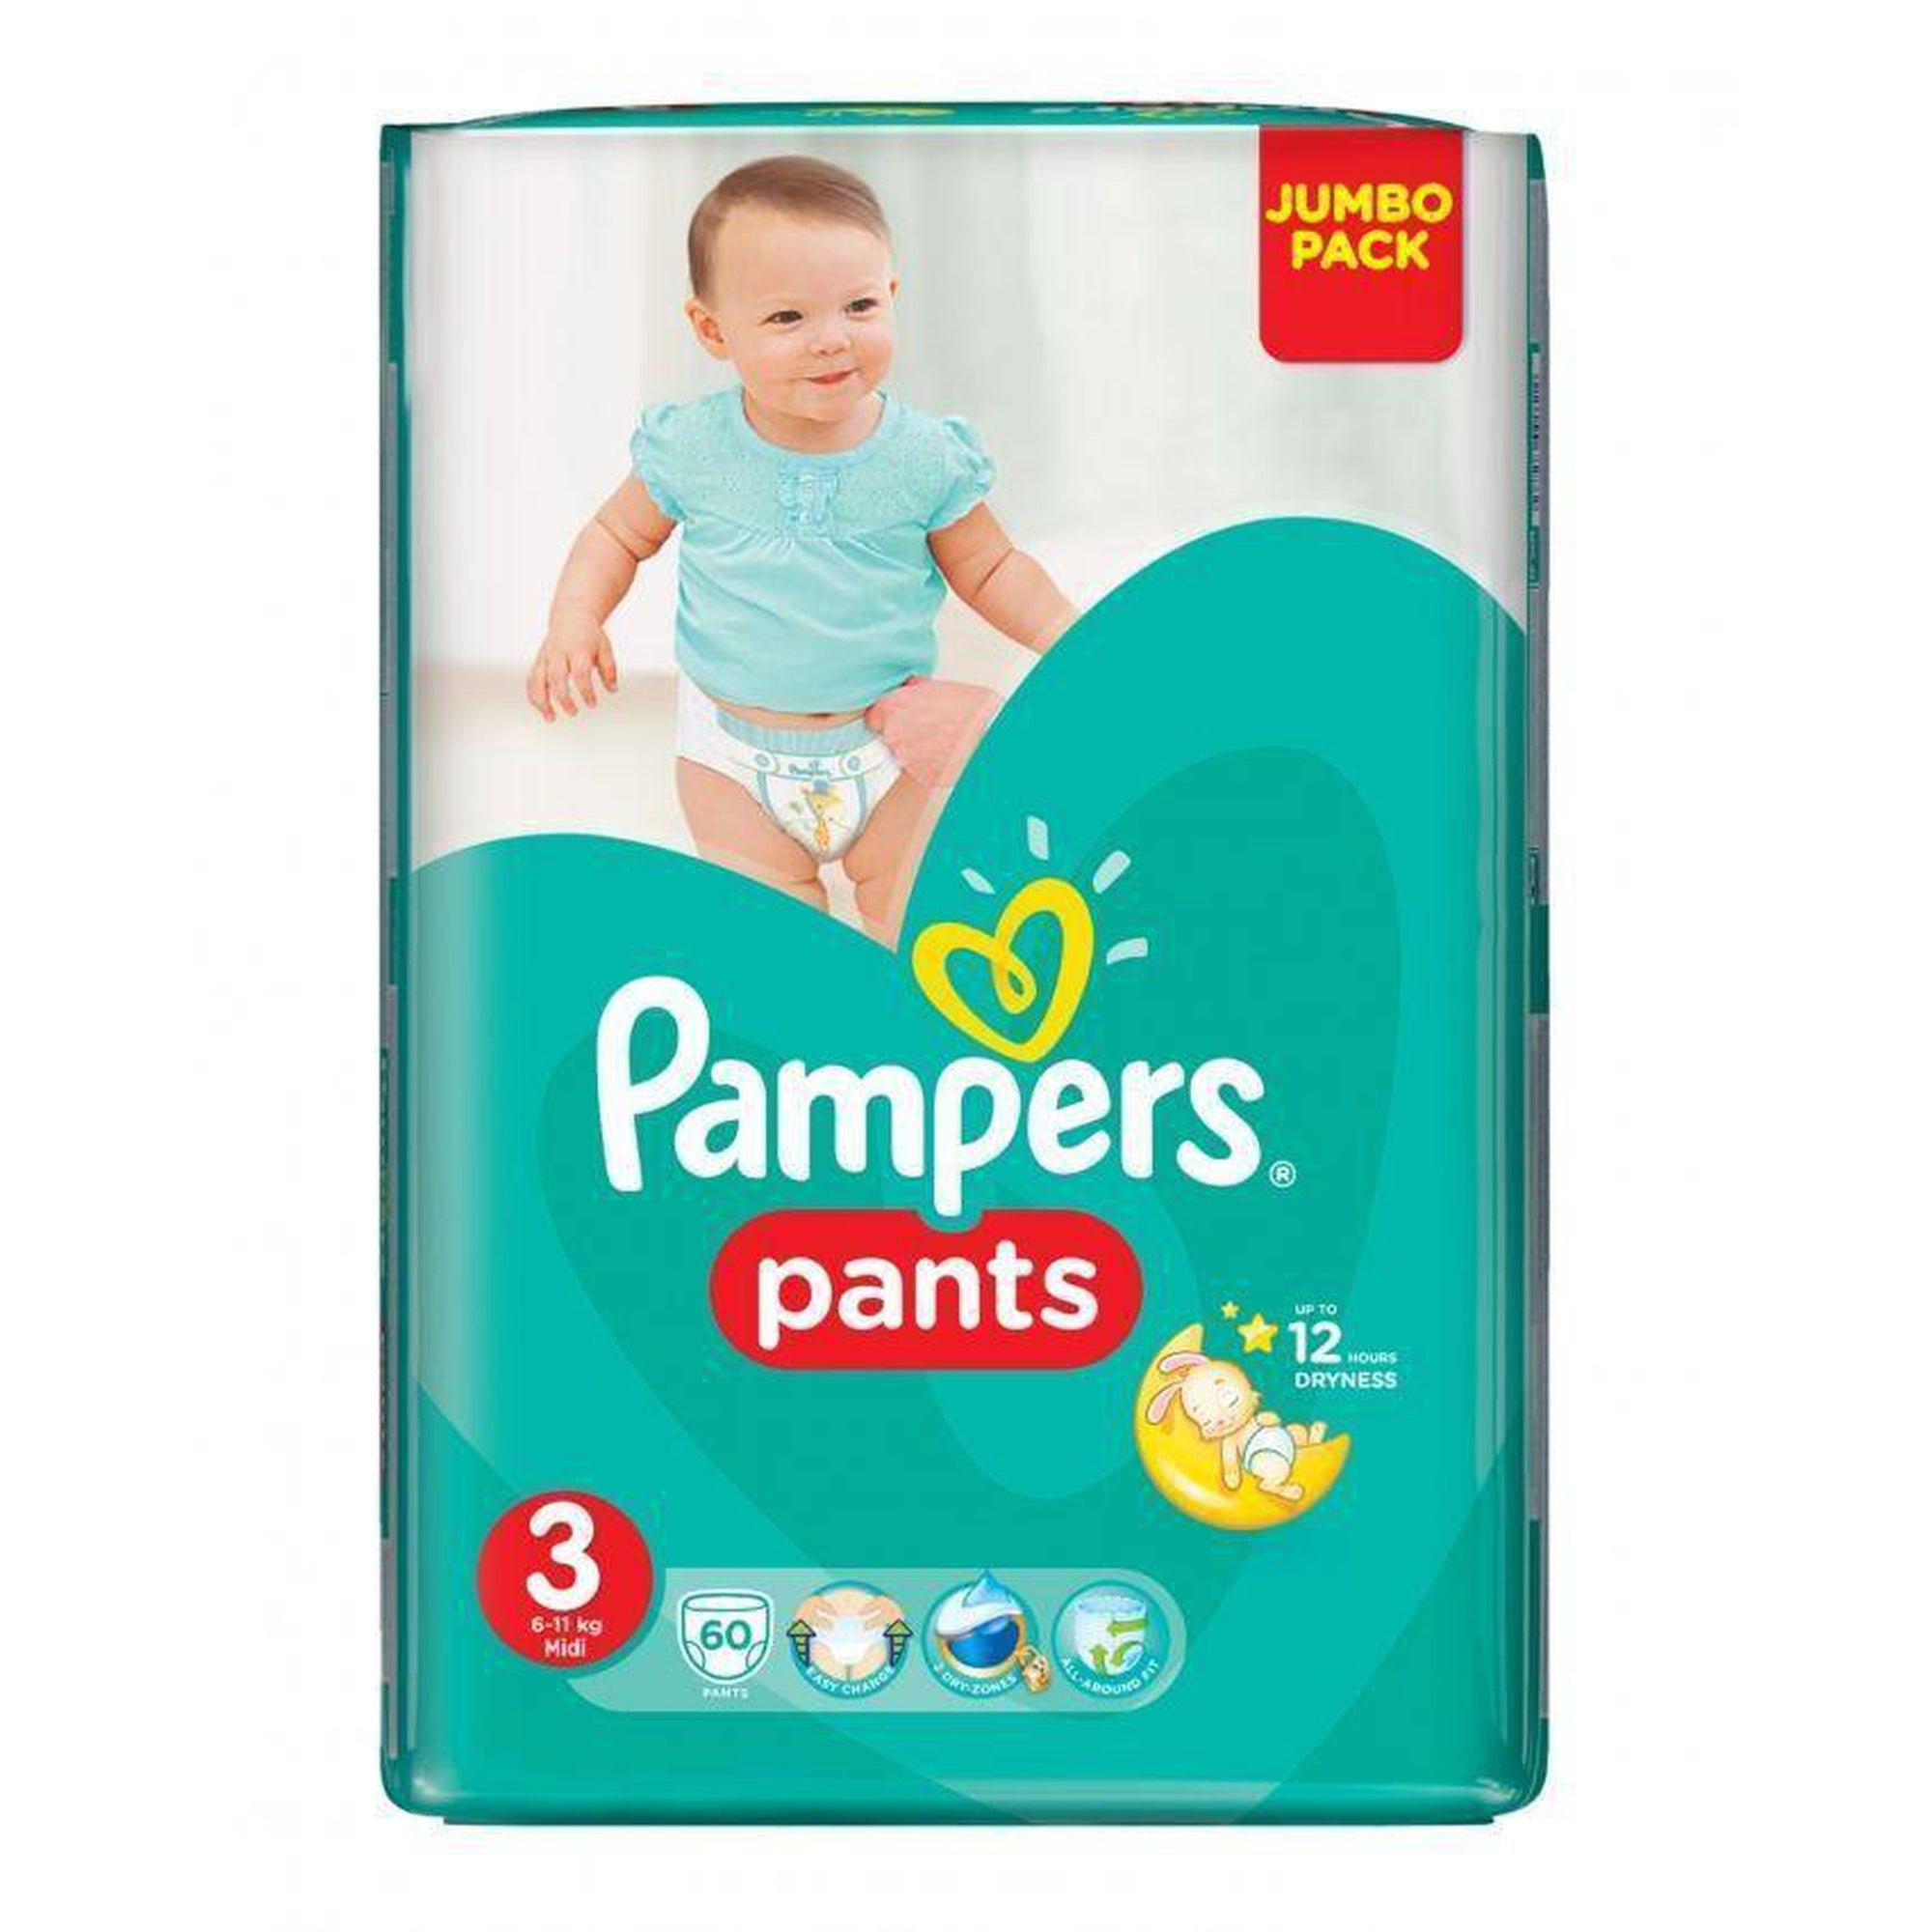 Pamper Pants Size 3 ( 6-11kgs) (62pc)-Diapers-Mother and Baby Shop Kenya's #1 Online Baby Shop